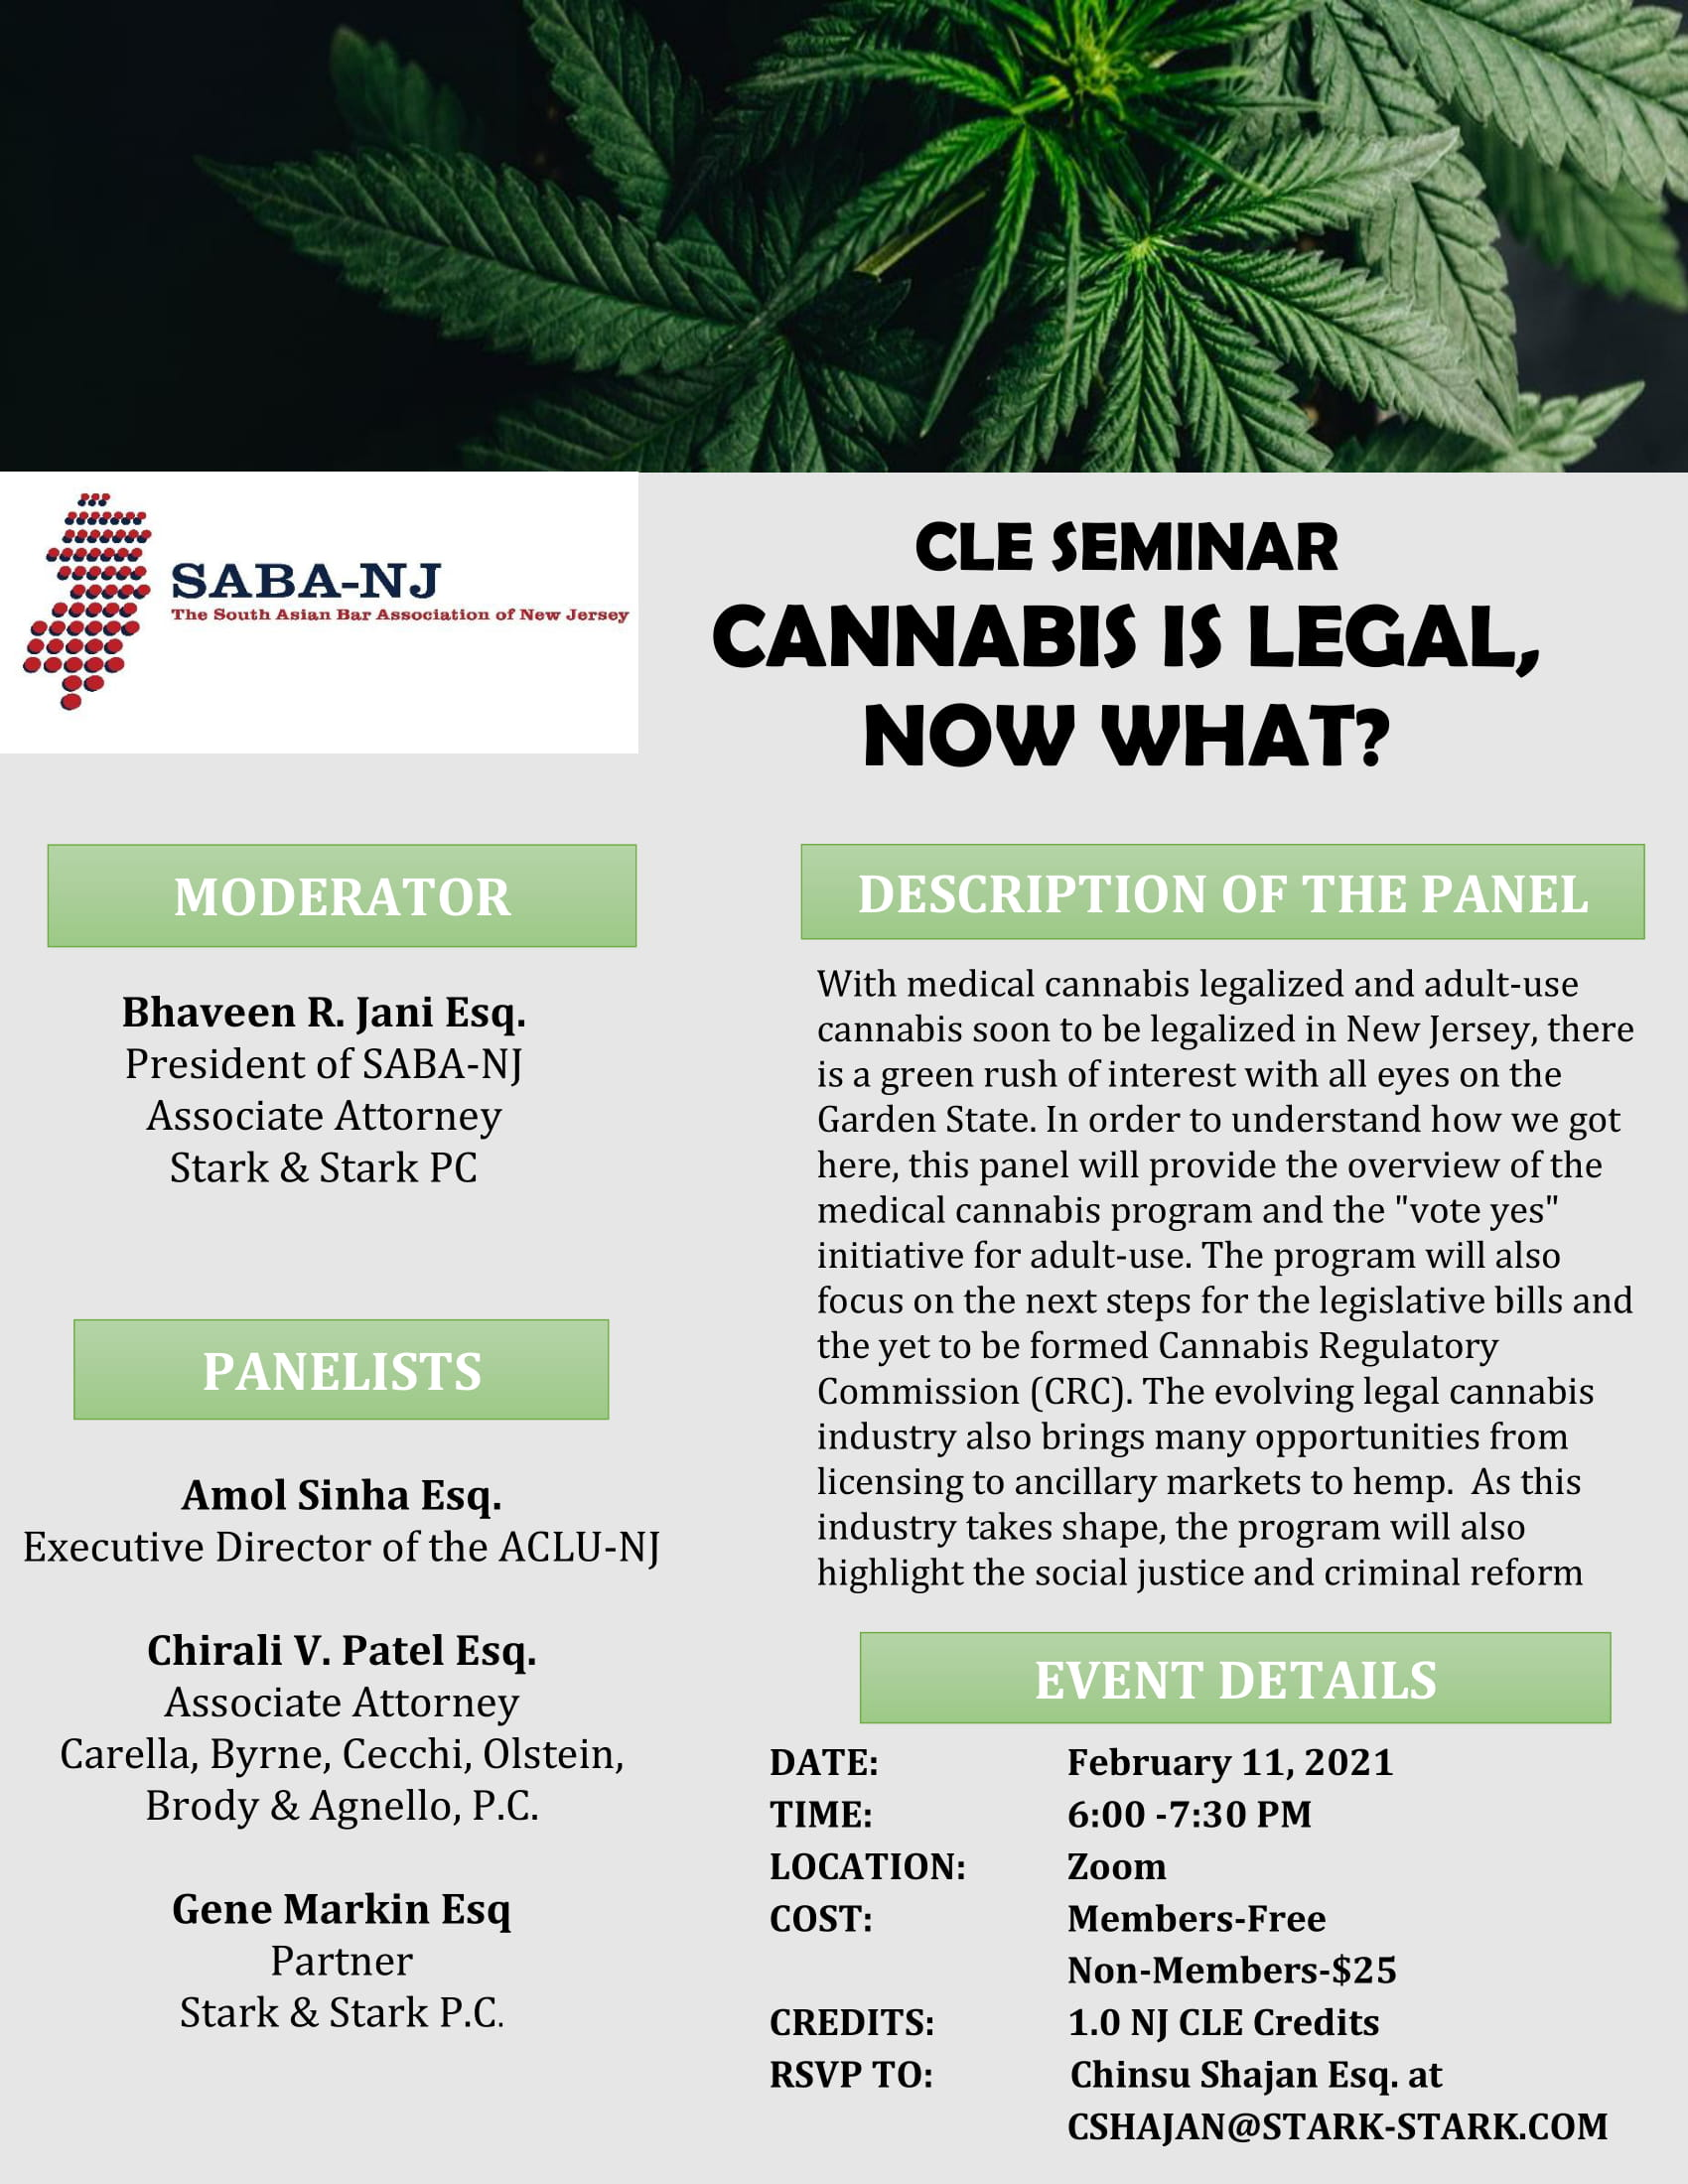 CLE SEMINAR, CANNABIS IS LEGAL, NOW WHAT?